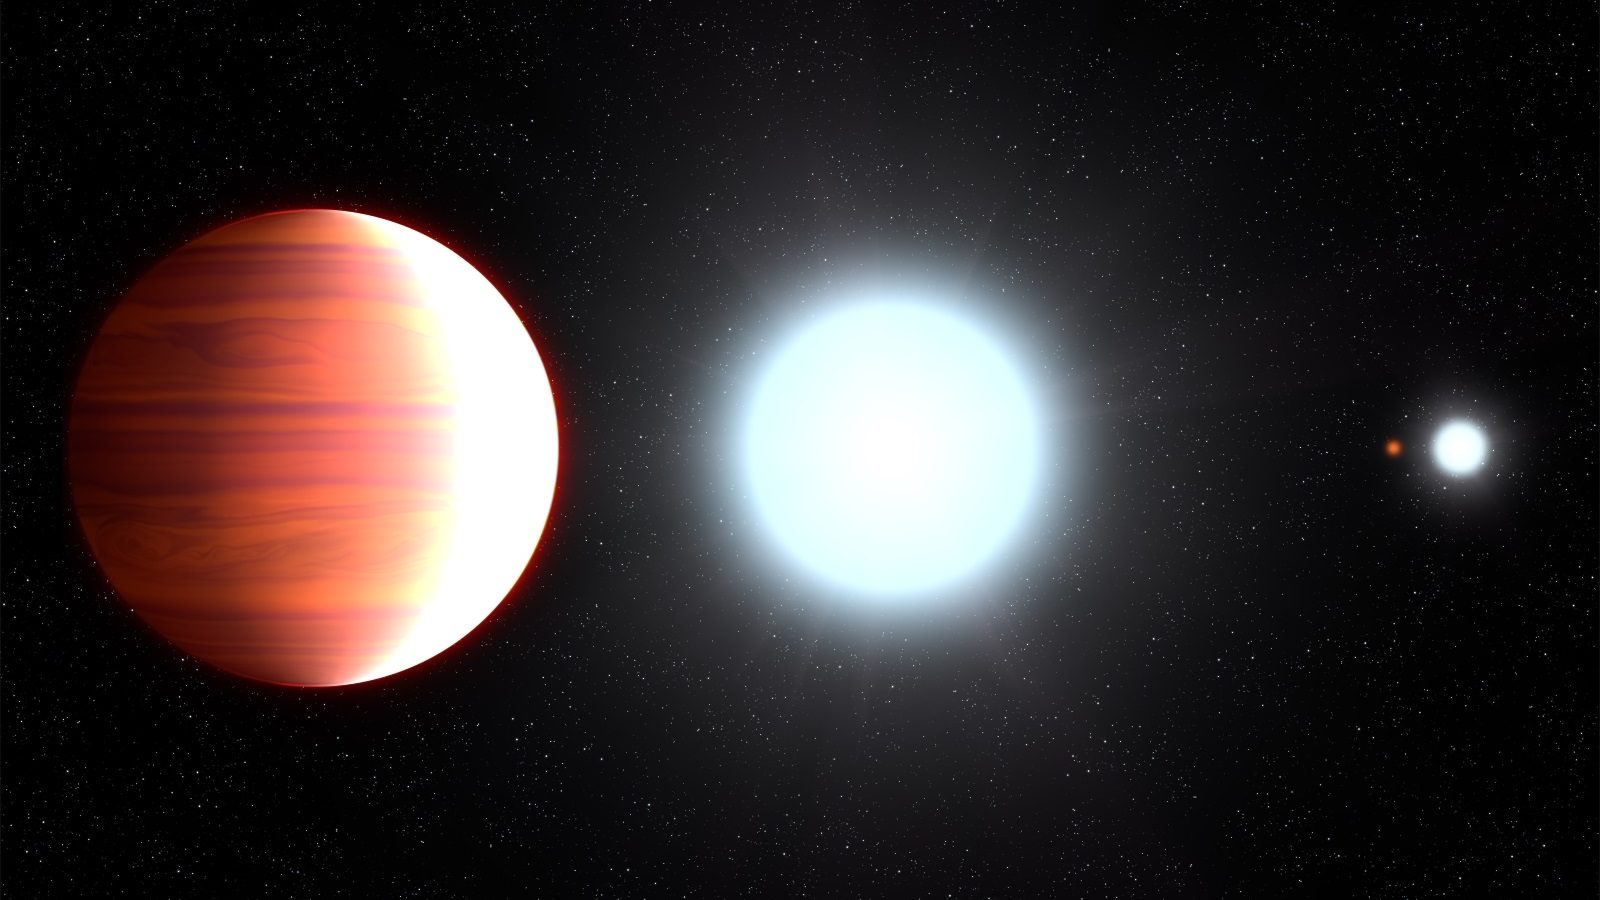 Sunscreen ingredient falls as 'snow' on hot exoplanet ...